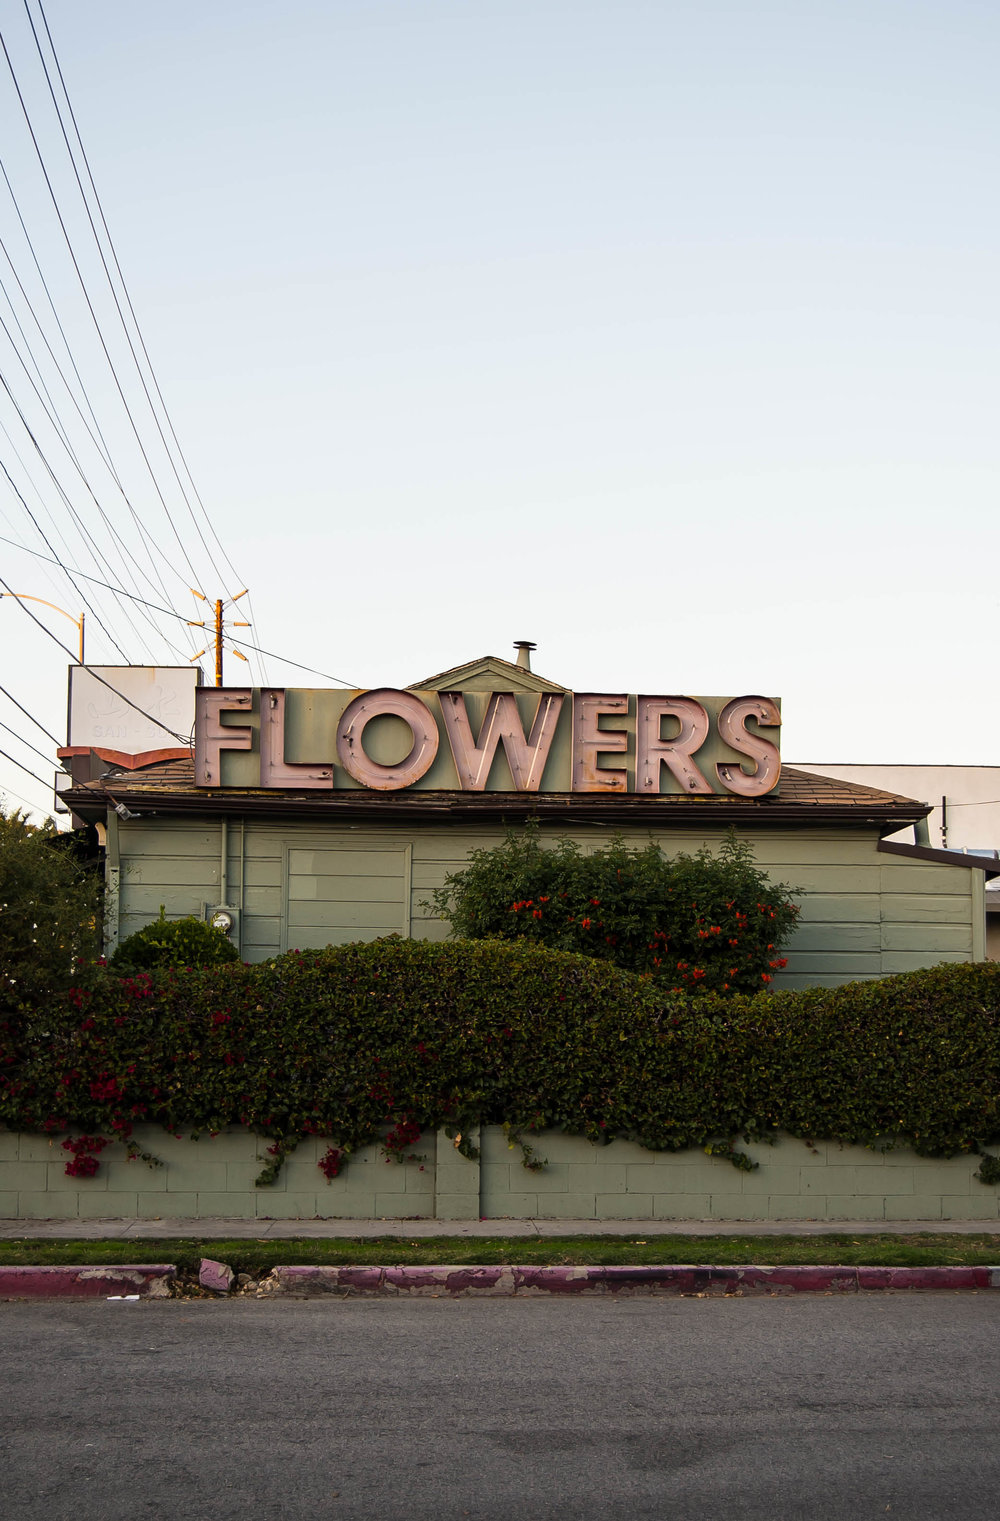 2016_12_27 la_ca_usa flowers house V2.jpg